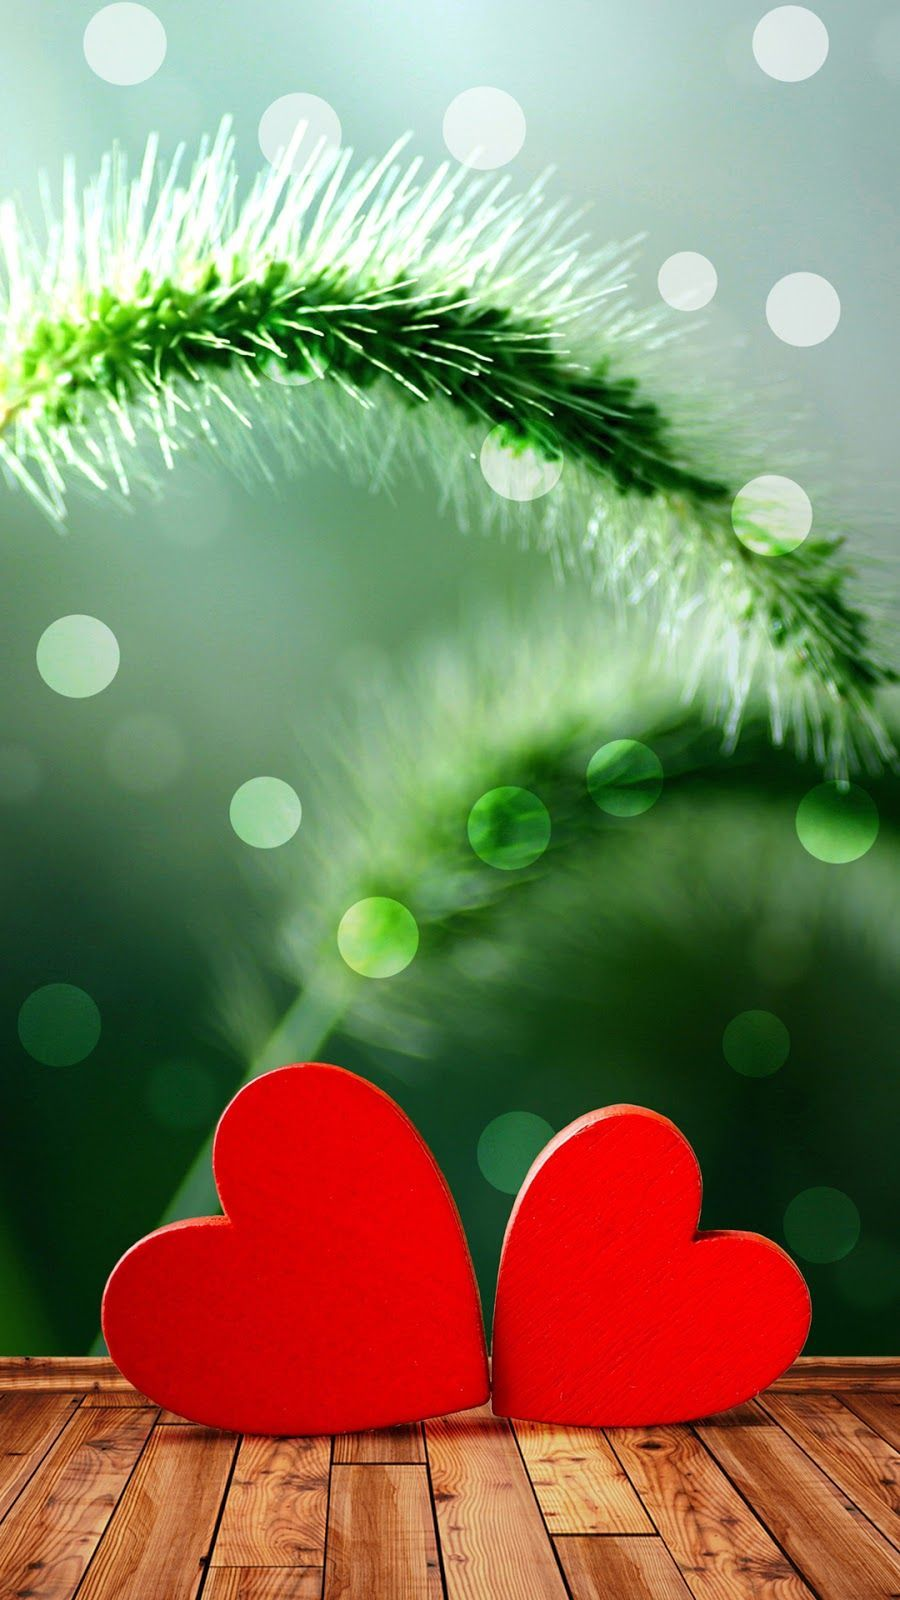 Cool Iphone 6 Home Screen Iphone 6 Christmas Wallpaper Hd Images In 2020 Heart Wallpaper Beautiful Wallpaper For Phone Iphone Wallpaper